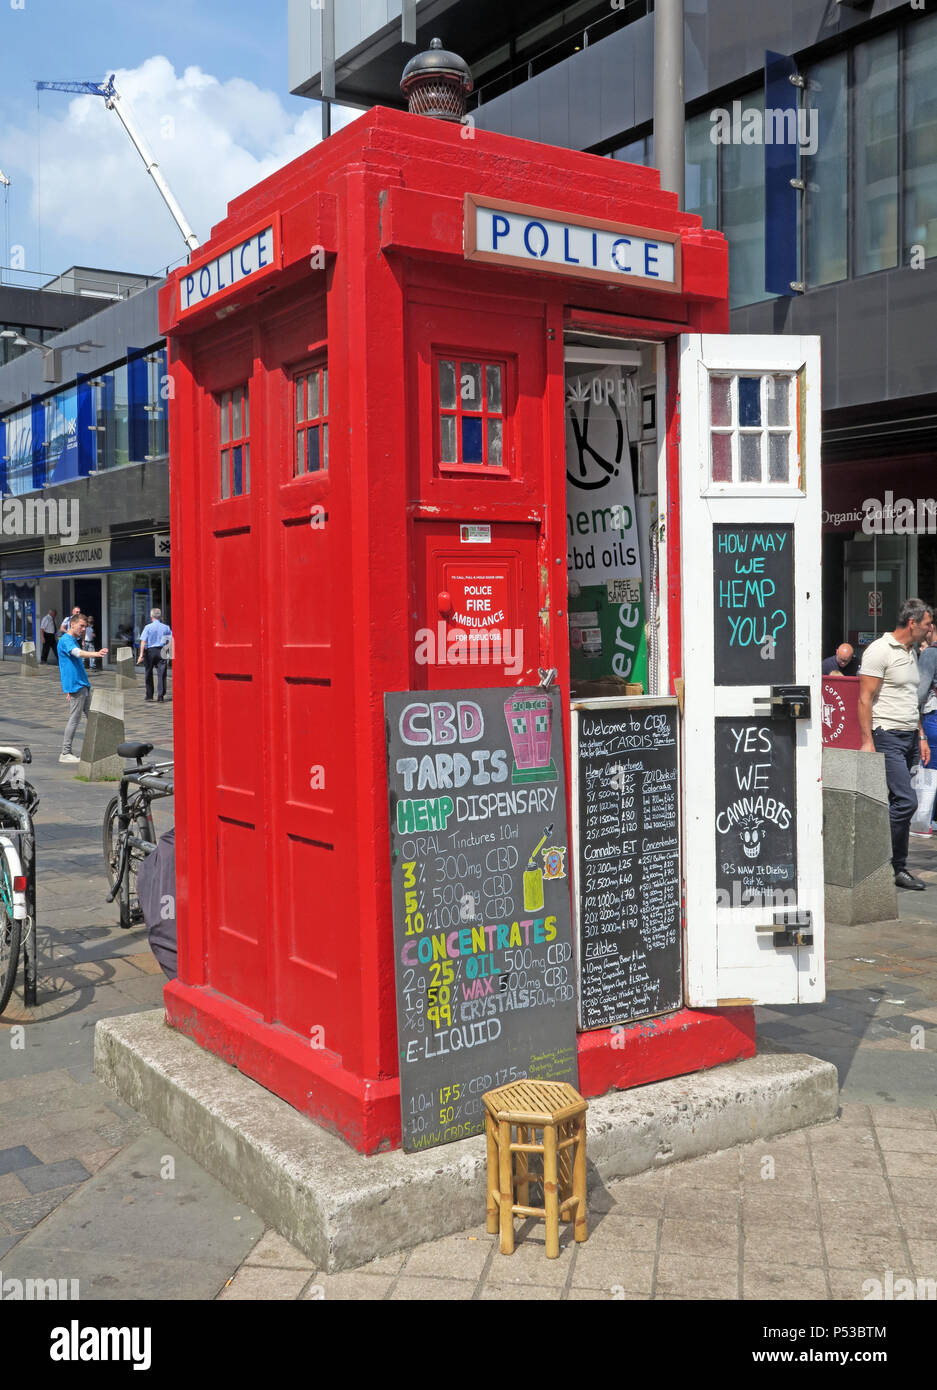 Legalise cannabis, the Chris Mackenzie CBD Hemp Dispensary red Tardis police box, Sauchiehall Street, Glasgow, Scotland UK - Stock Image